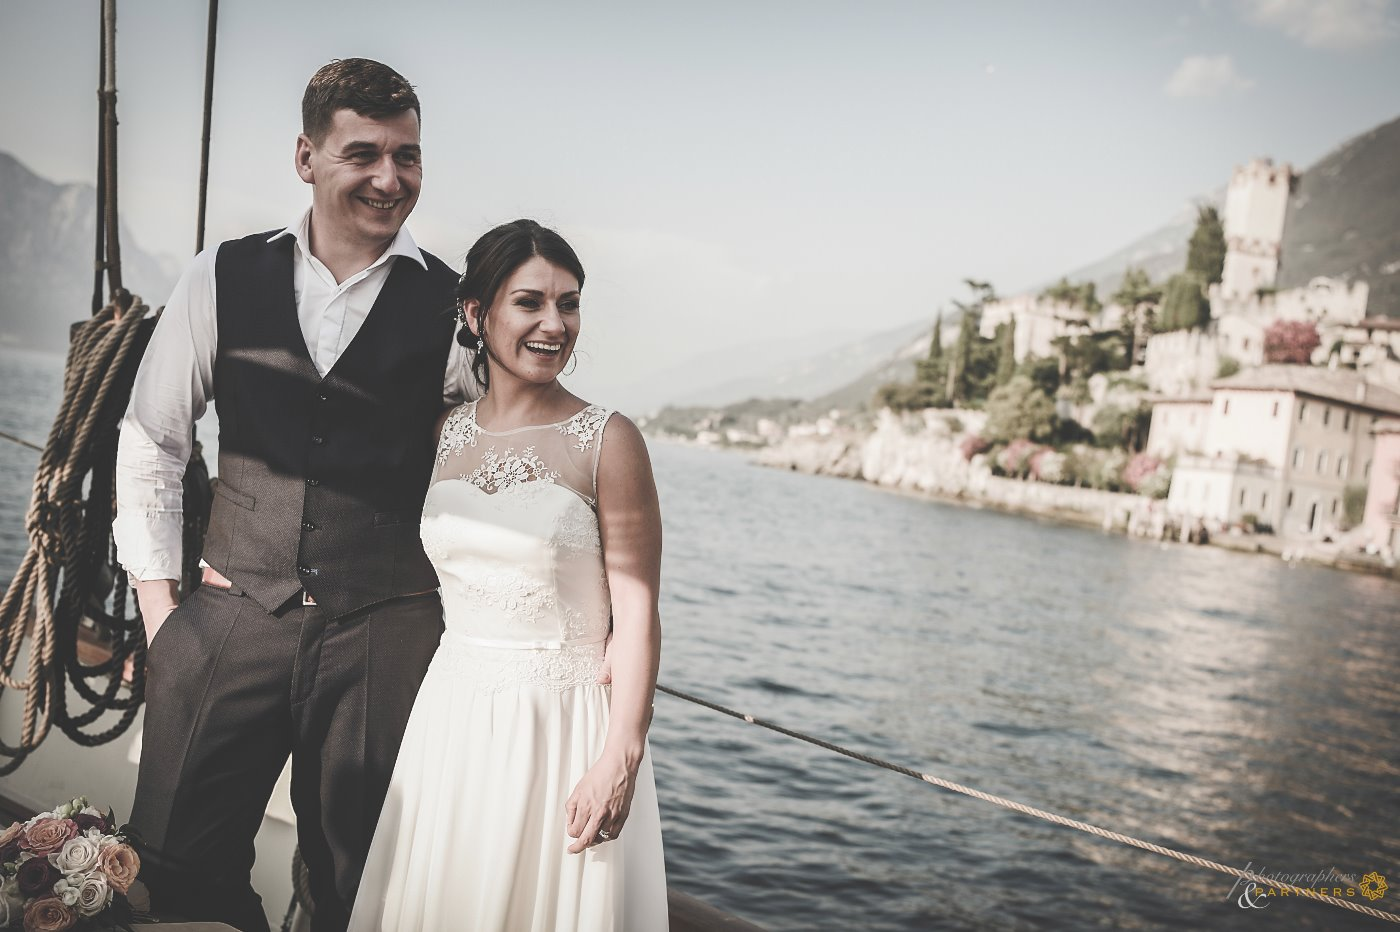 photography_weddings_malcesine_18.jpg